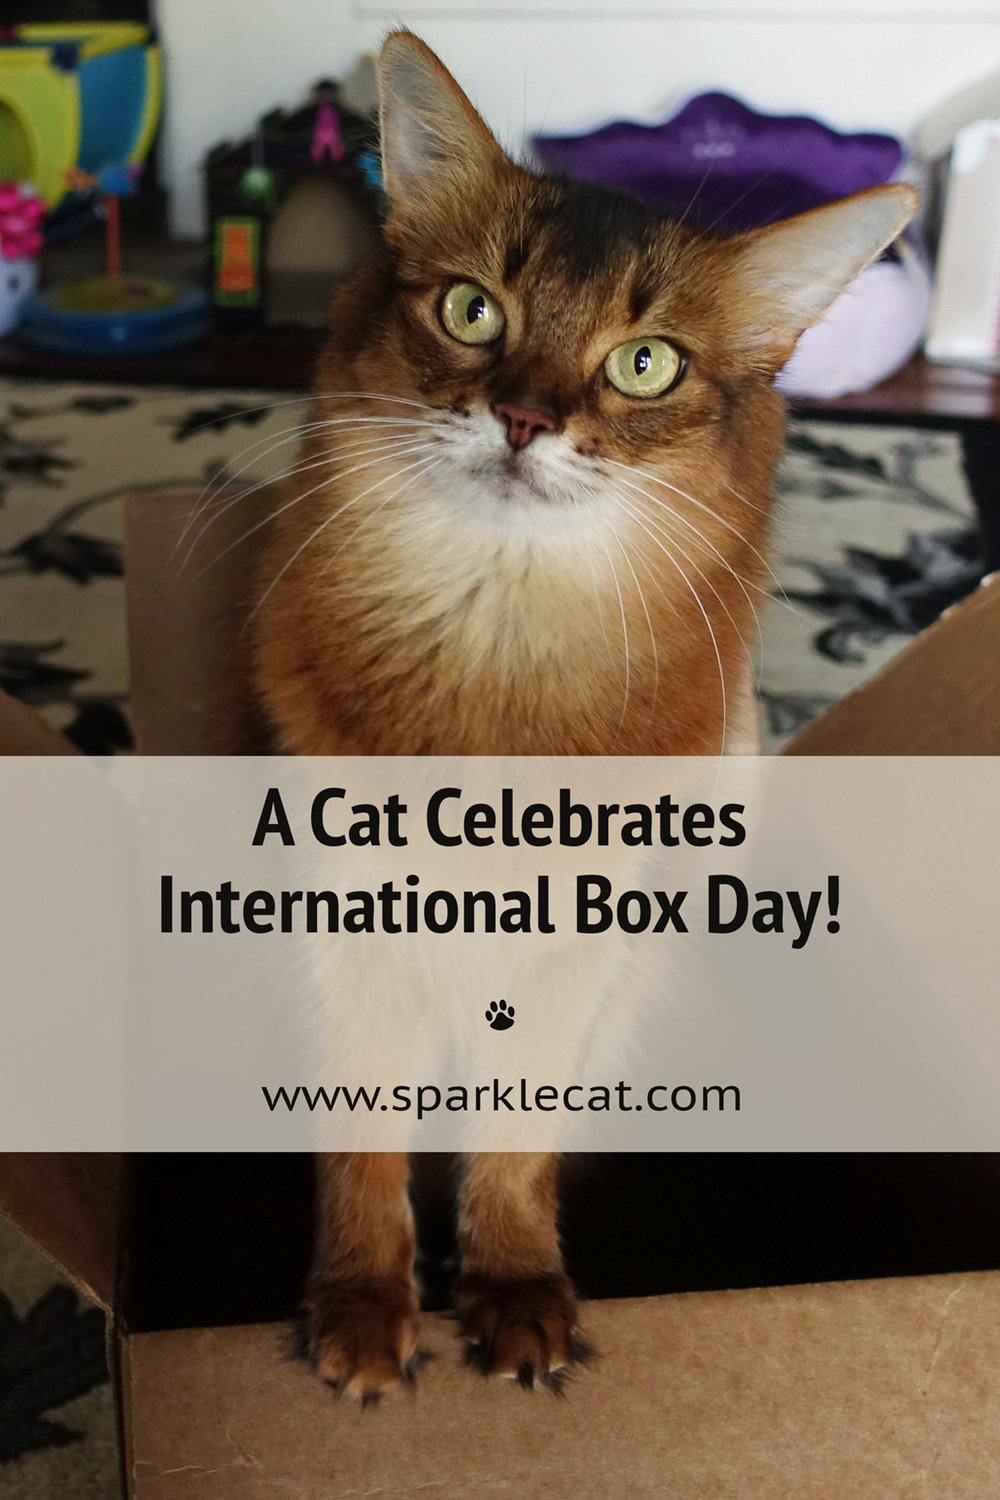 A Favorite Cat Holiday - International Box Day!